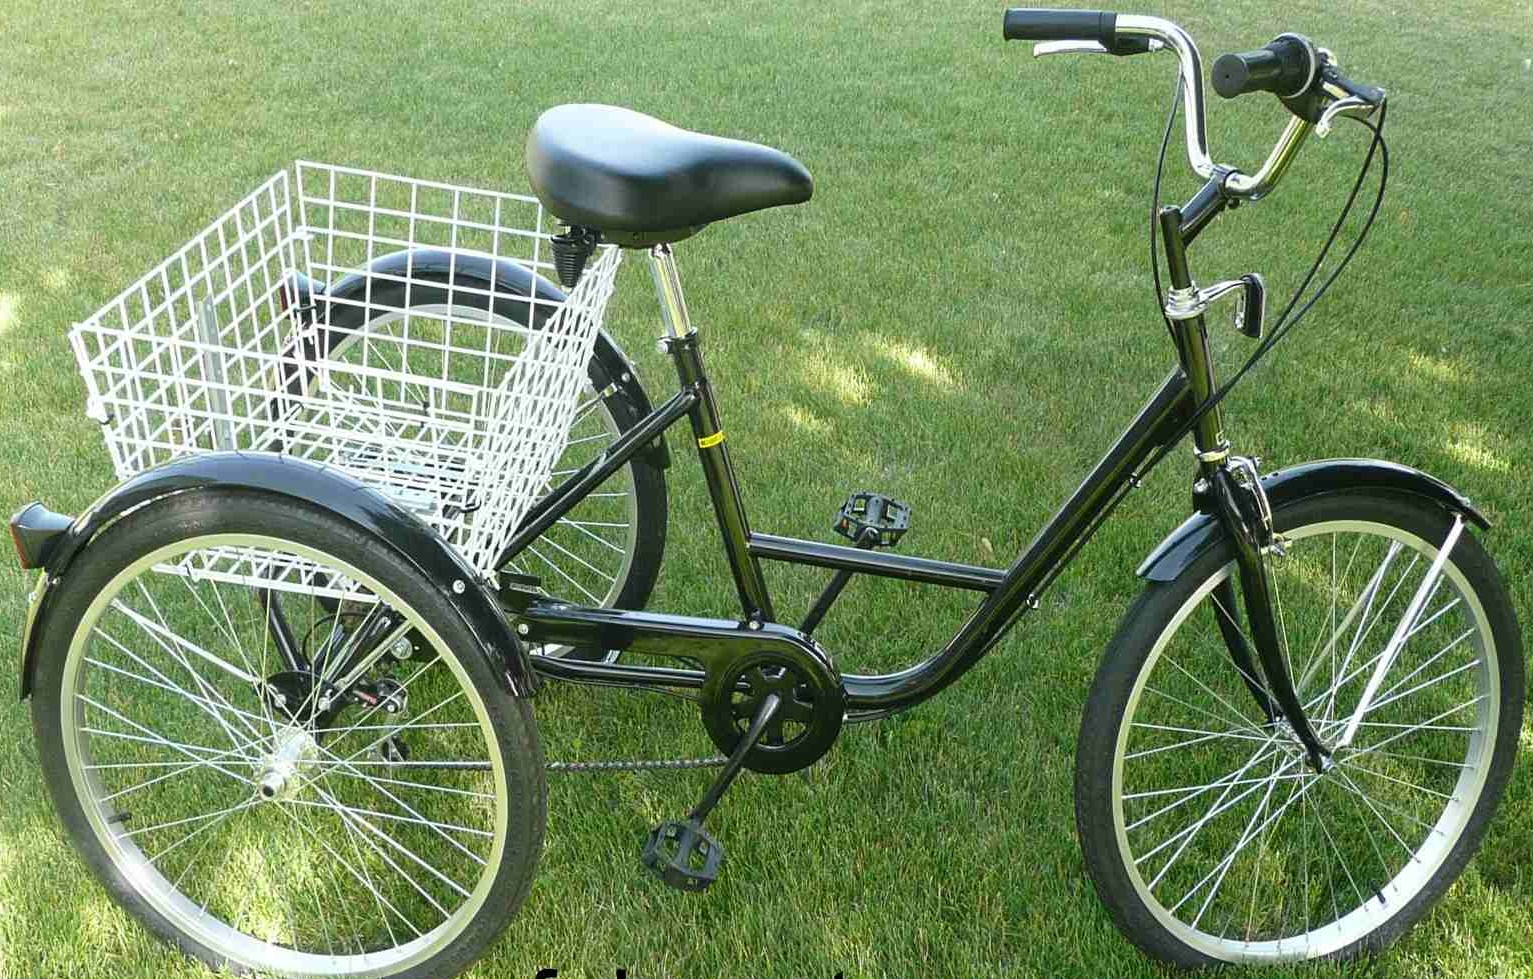 6 speed adult tricycle